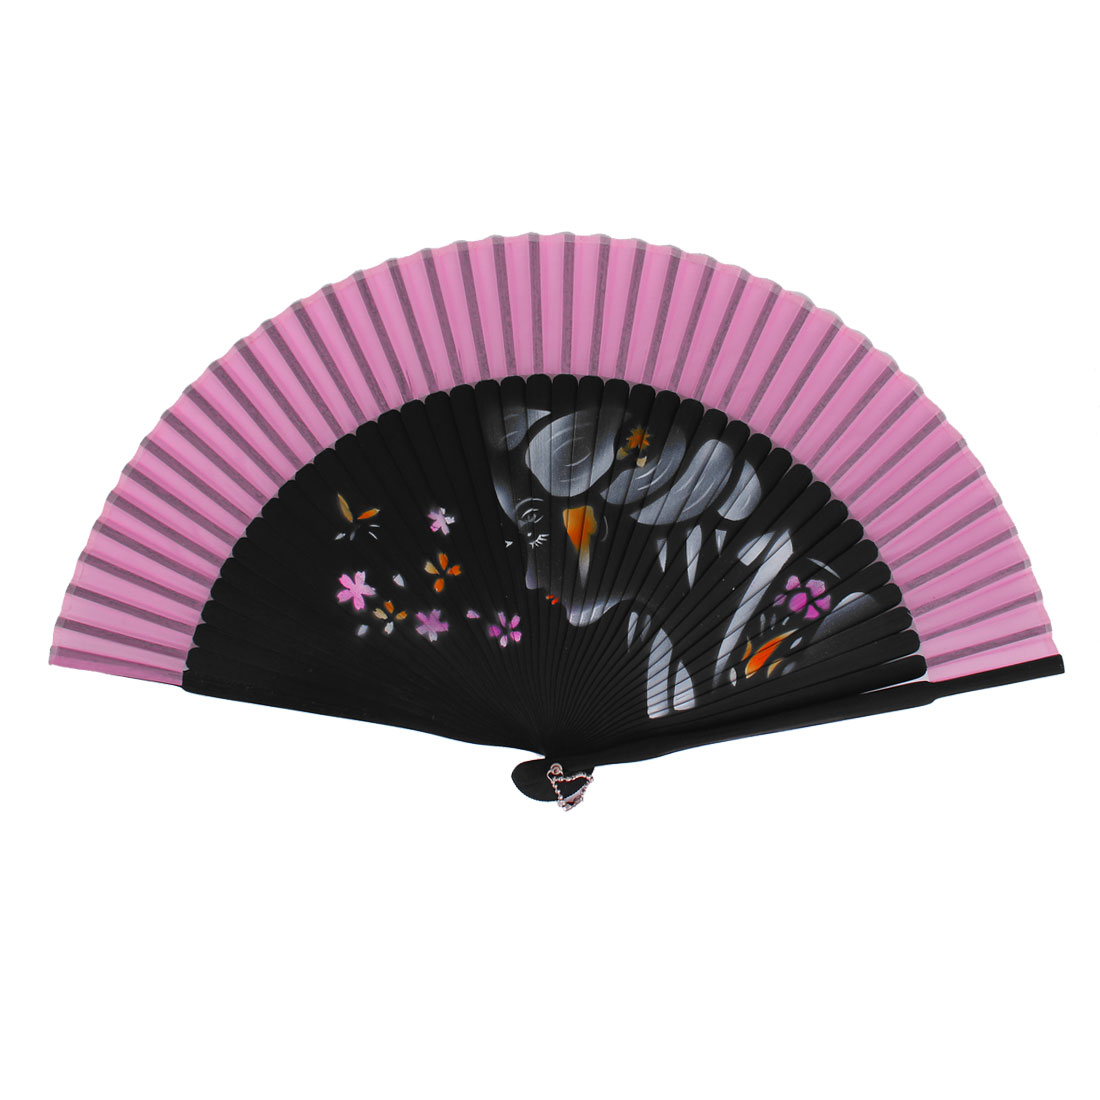 Chinese Style Girls Face Decor Wood Handheld Folding Hand Fan Pink Black